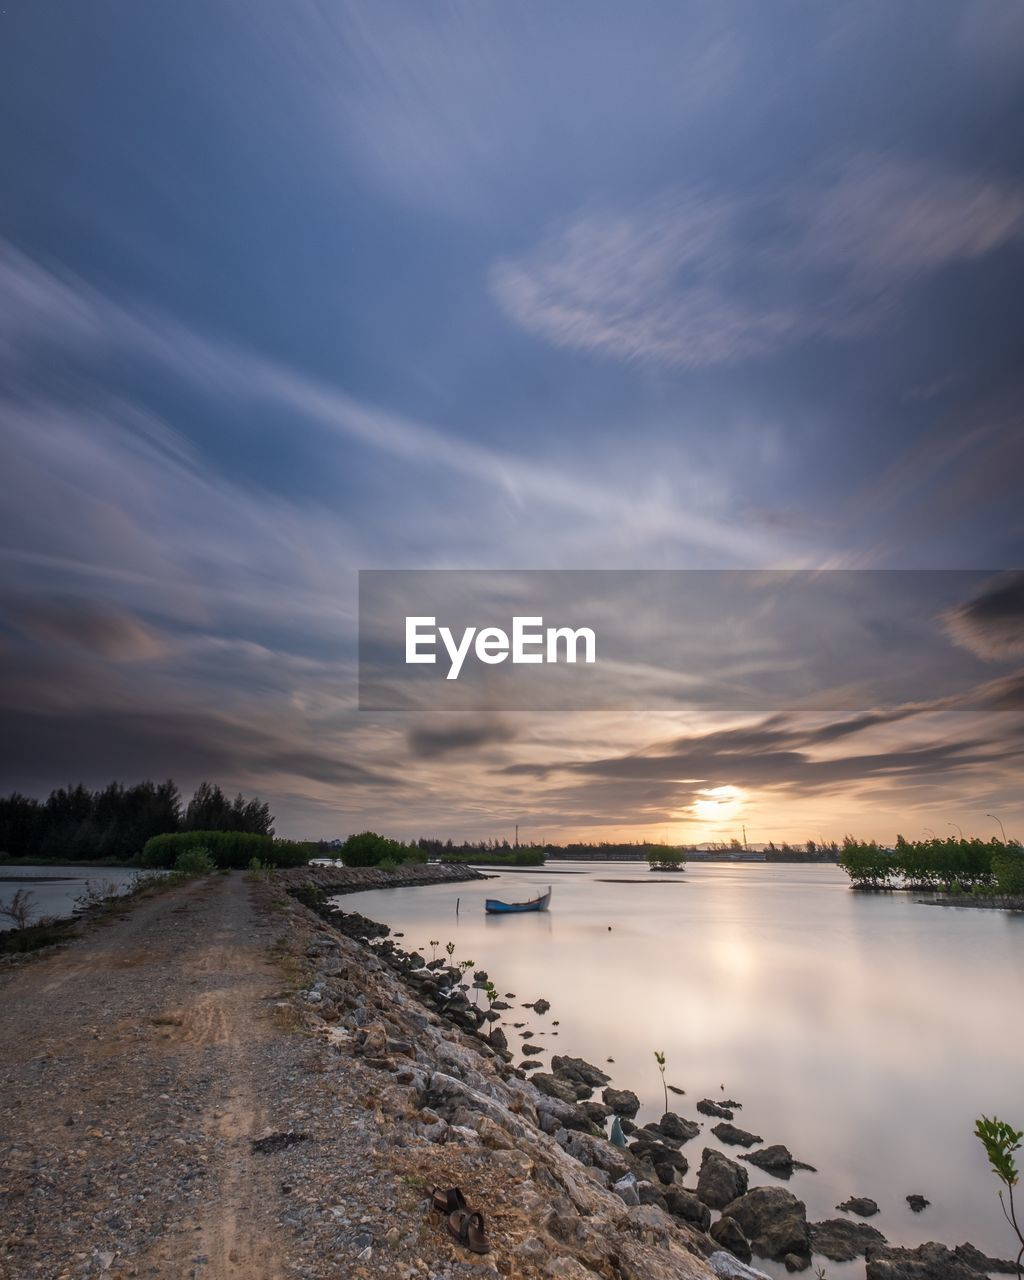 sky, water, cloud - sky, scenics - nature, nature, beauty in nature, tranquility, tranquil scene, no people, sunset, reflection, outdoors, non-urban scene, sea, architecture, built structure, day